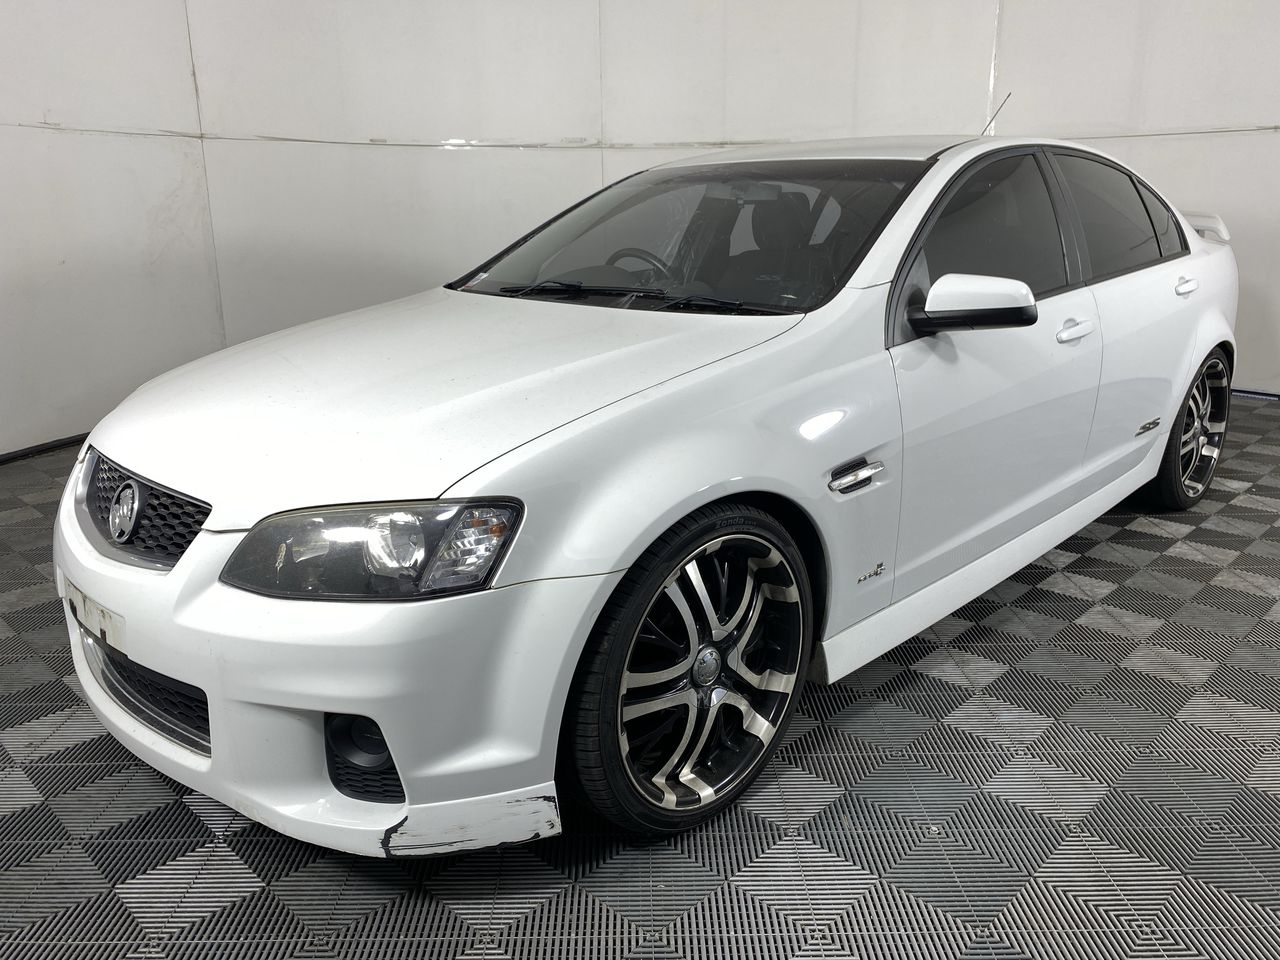 2011 My12 Holden VE2 Commodore SS 6.0 V8 6 Speed 128,239 km's